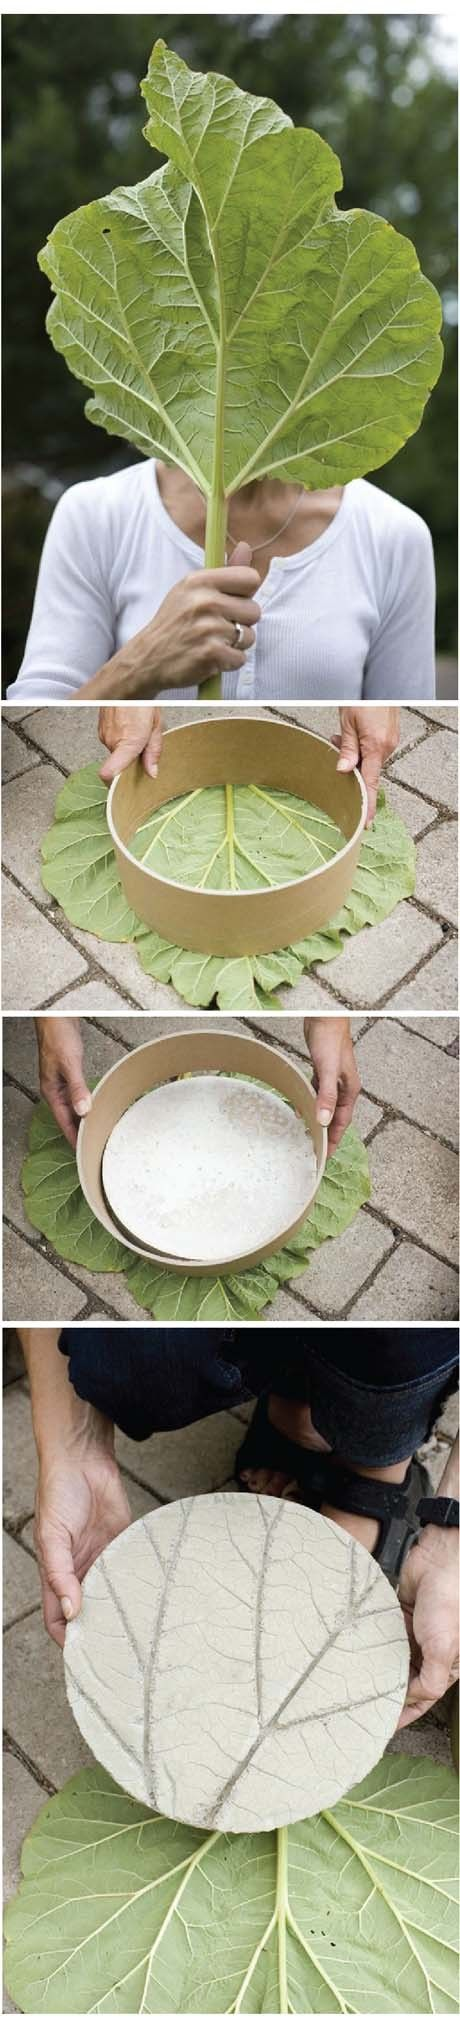 DiY stepping stones, I need to do this palm leaves